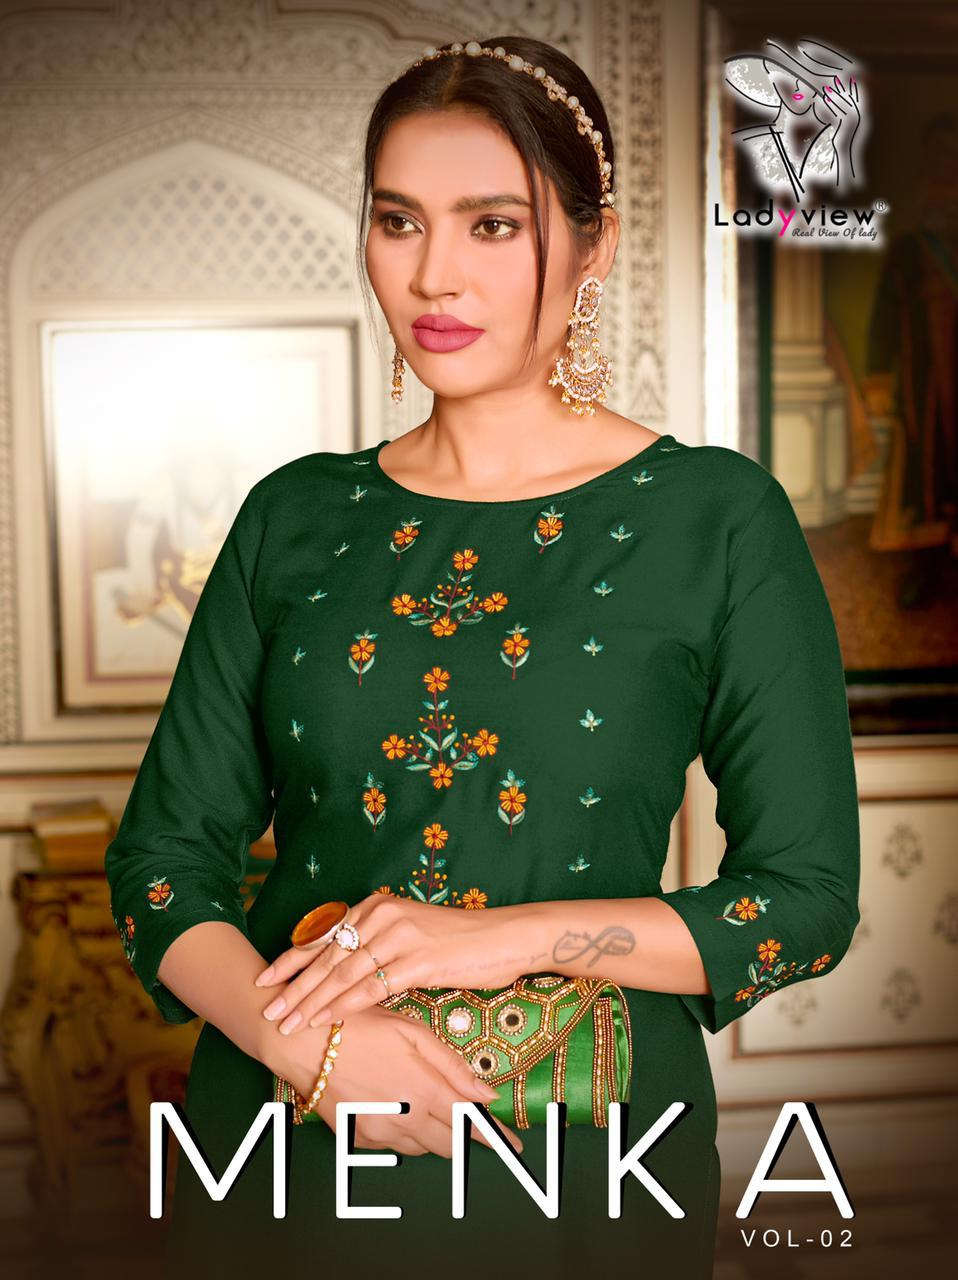 Ladyview Menka Vol 2  Designer 14kg Rayon Embroidery Work Kurti With Palazzo Catalog at Wholesale rate